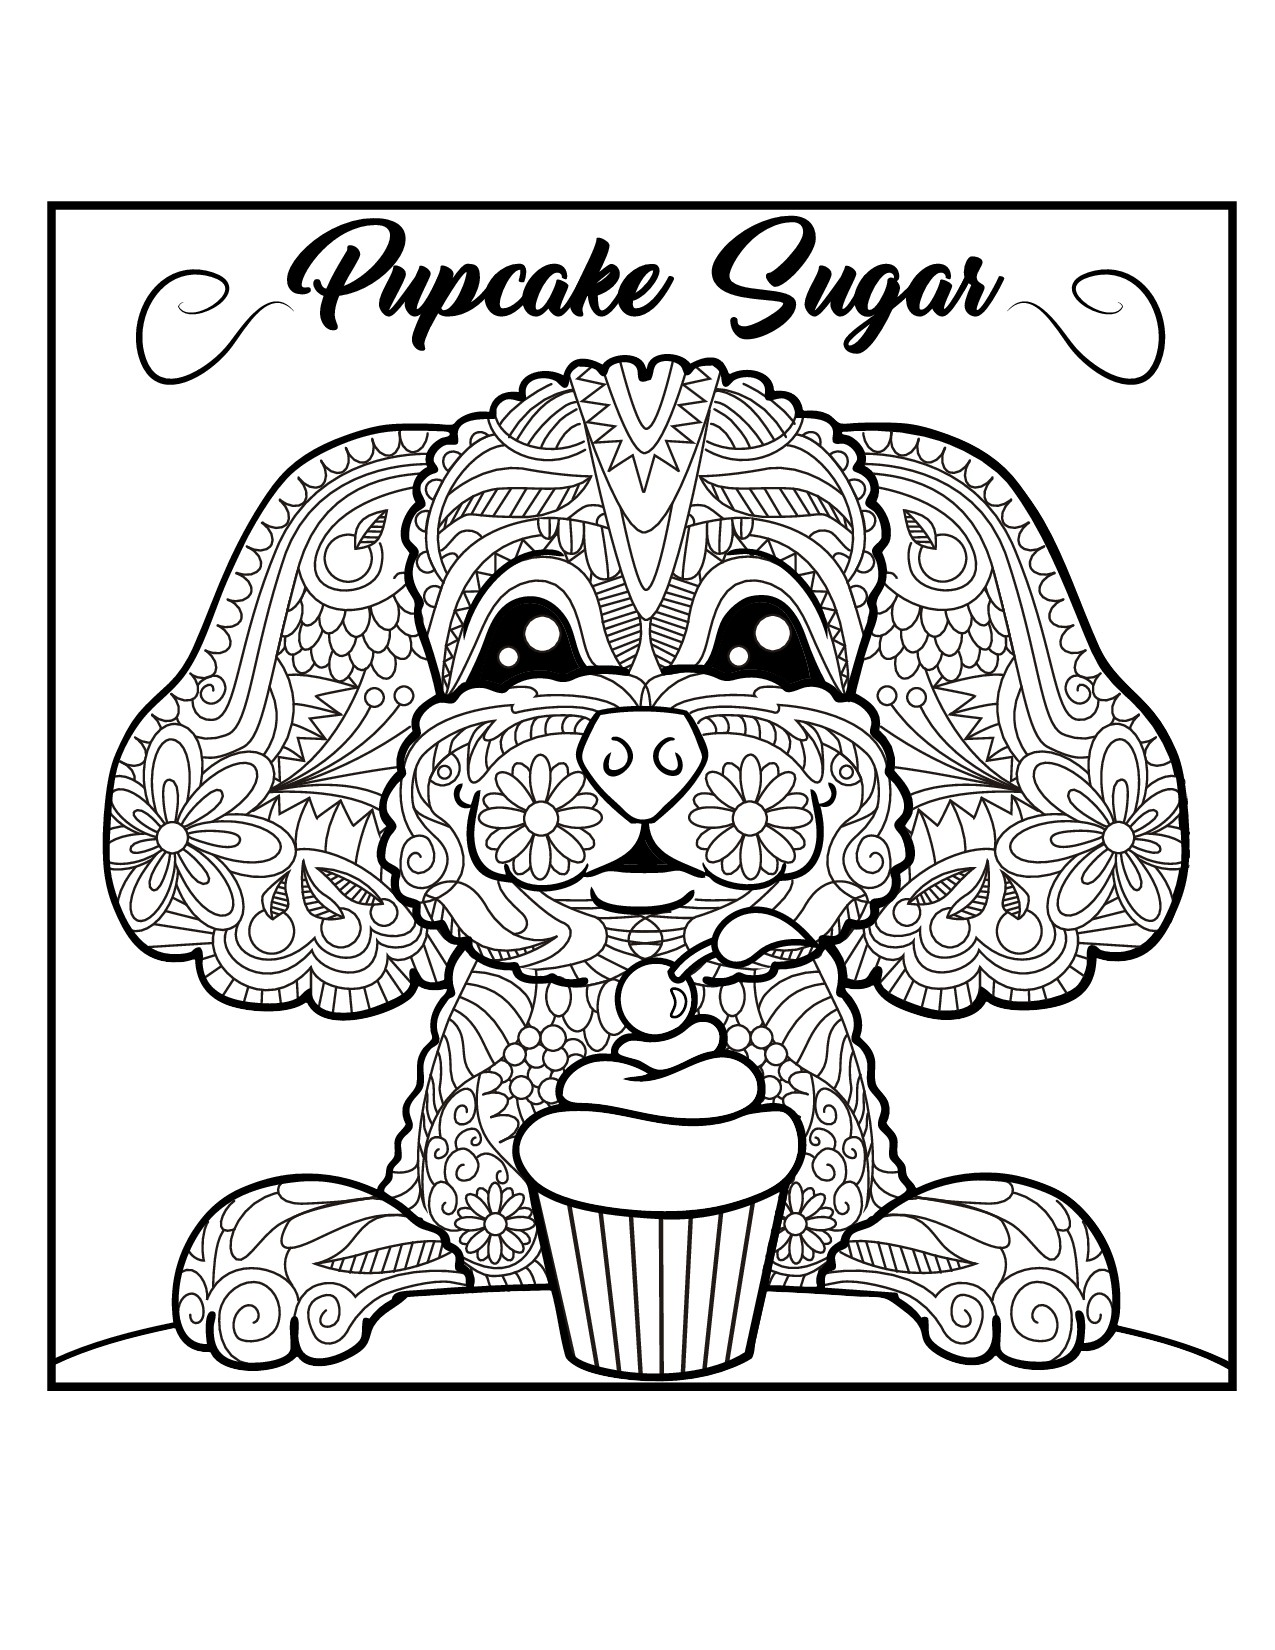 Design an adult coloring book image for Pupcake Sugar